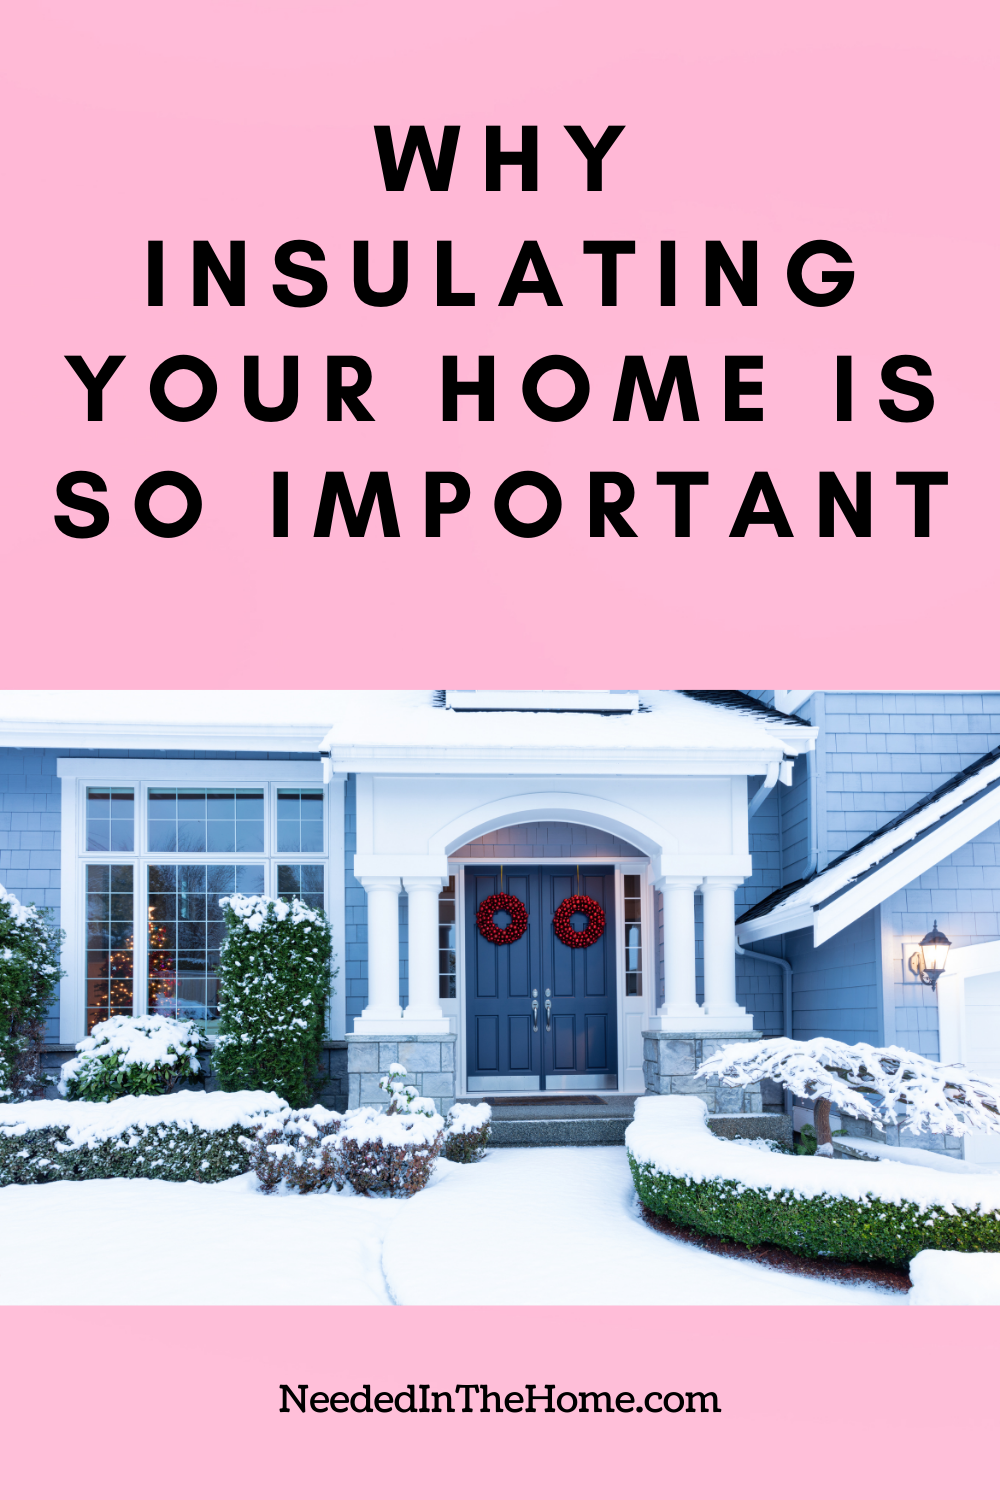 pinterest-pin-description why insulating your home is so important home in winter snow neededinthehome